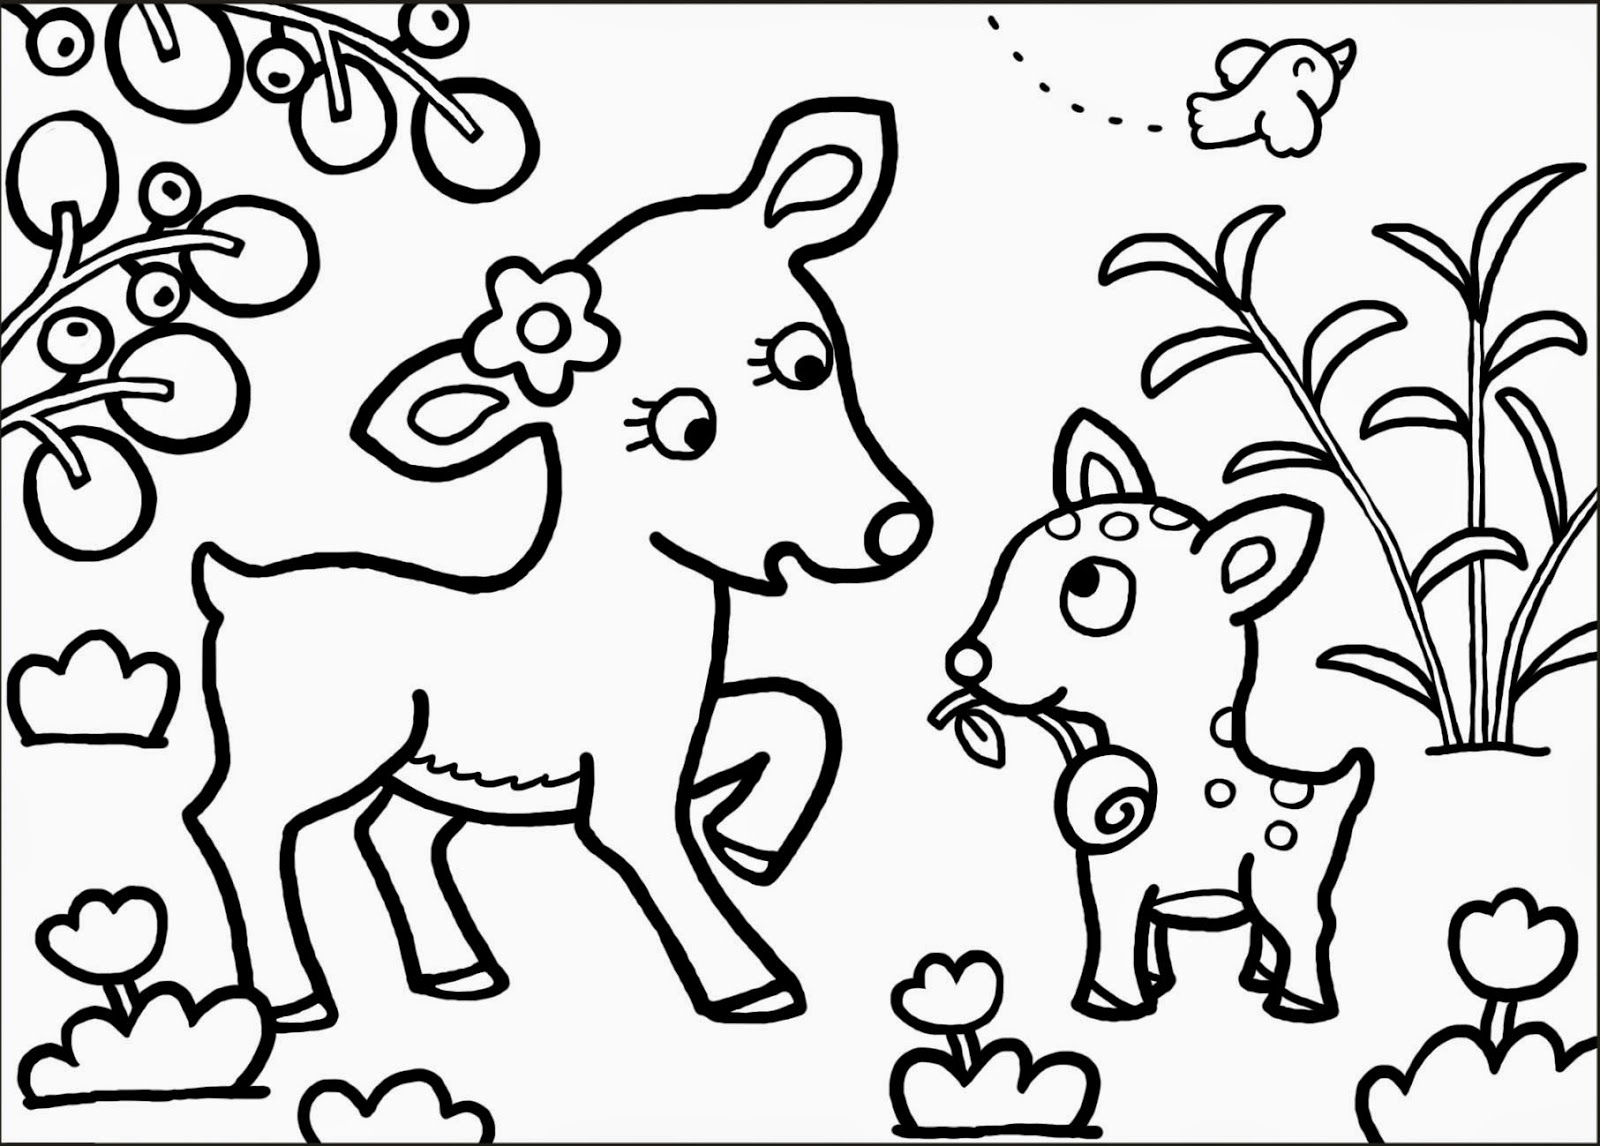 Coloriage faon biche - Coloriages escargot ...